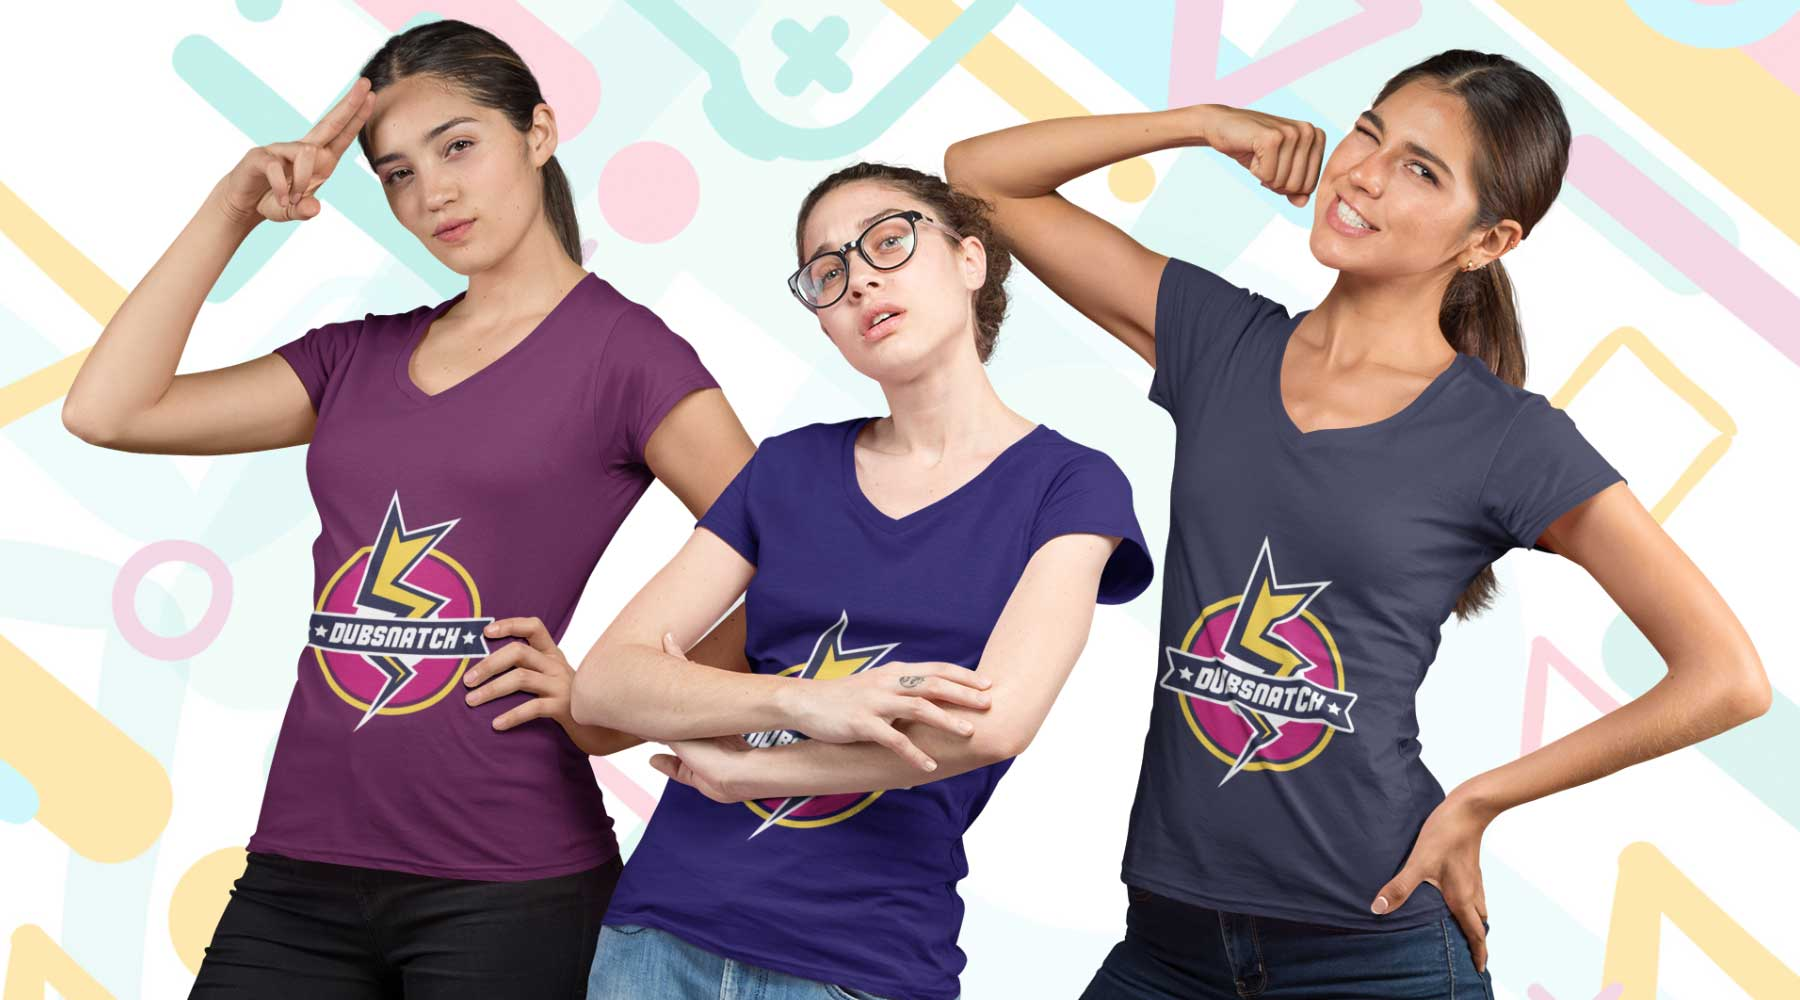 Shop gamer and geek apparel online for women